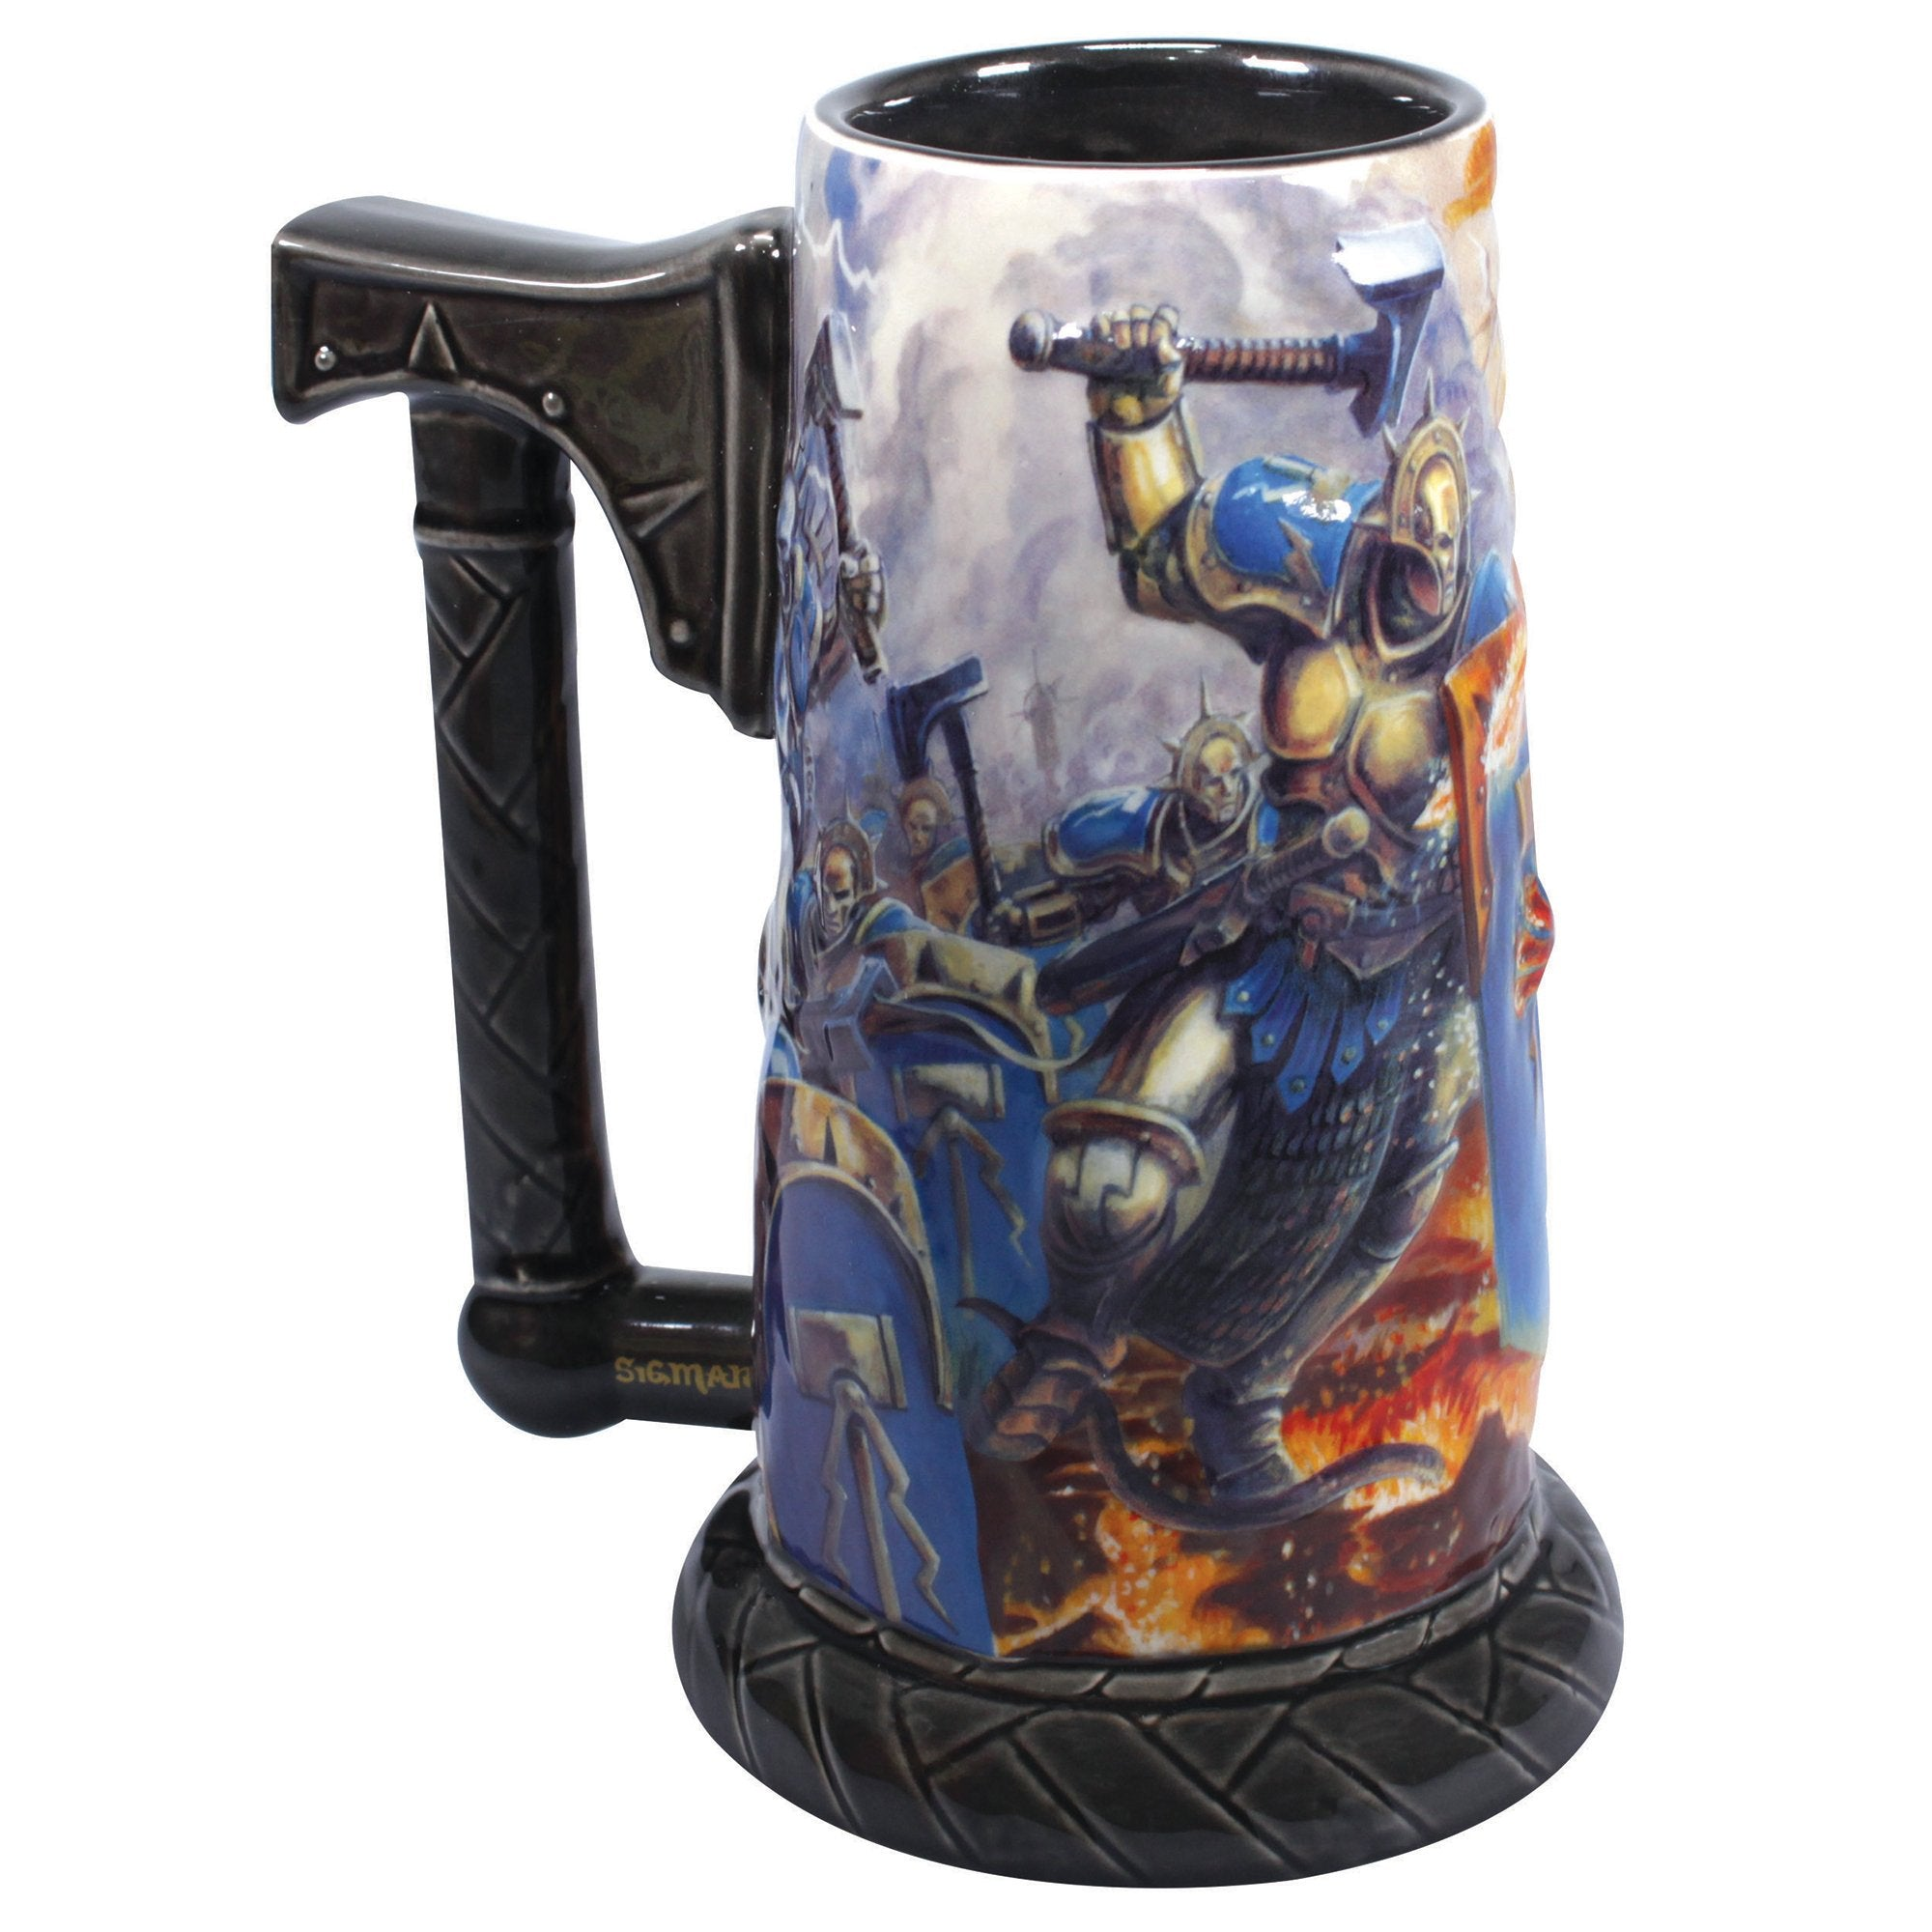 Warhammer Age of Sigmar Stein - Stormcast Eternal - Half Moon Bay US